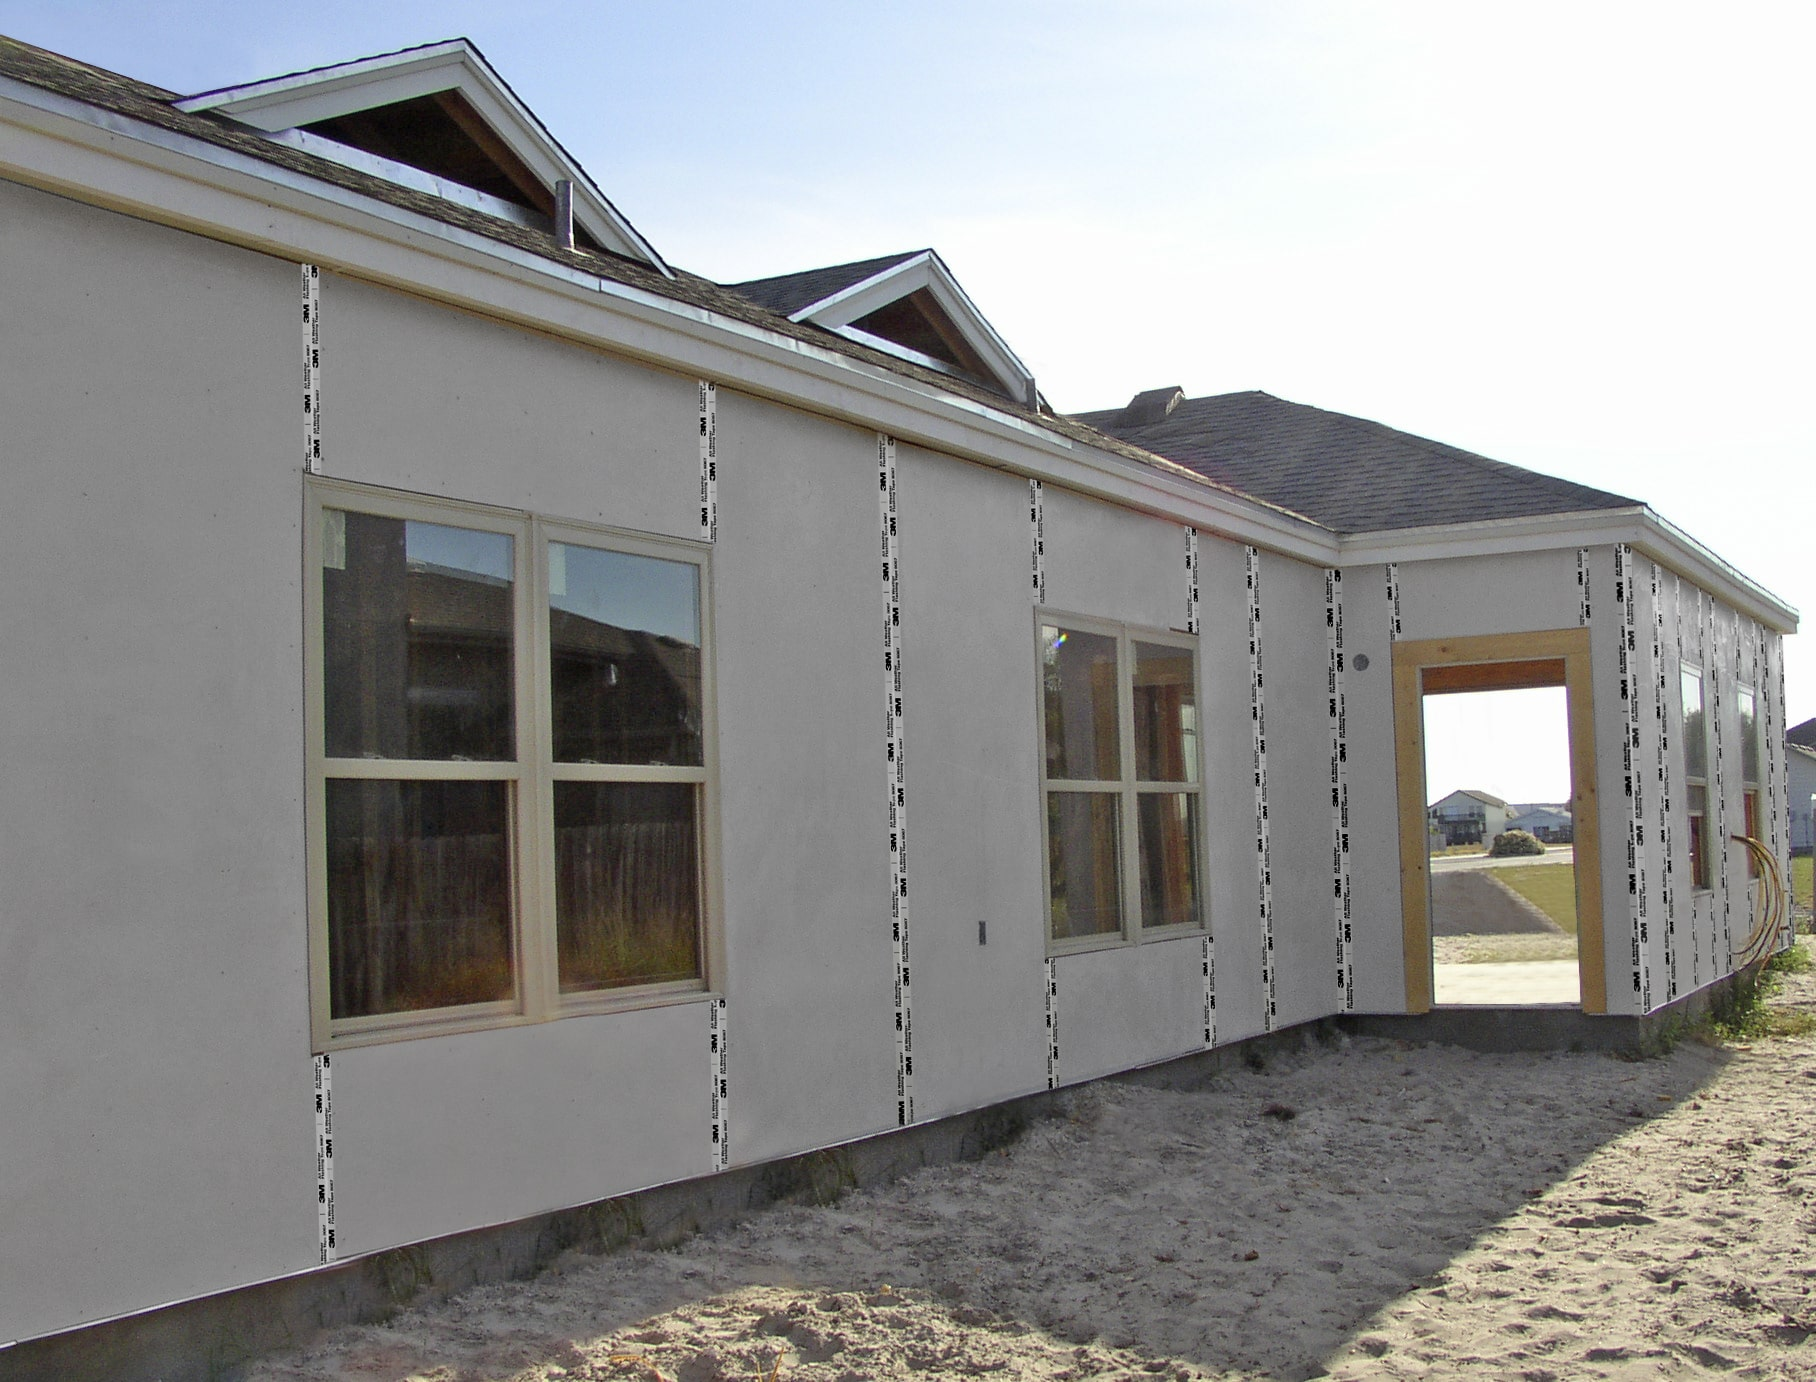 Exterior sheathing system improves energy efficiency Materials for exterior walls